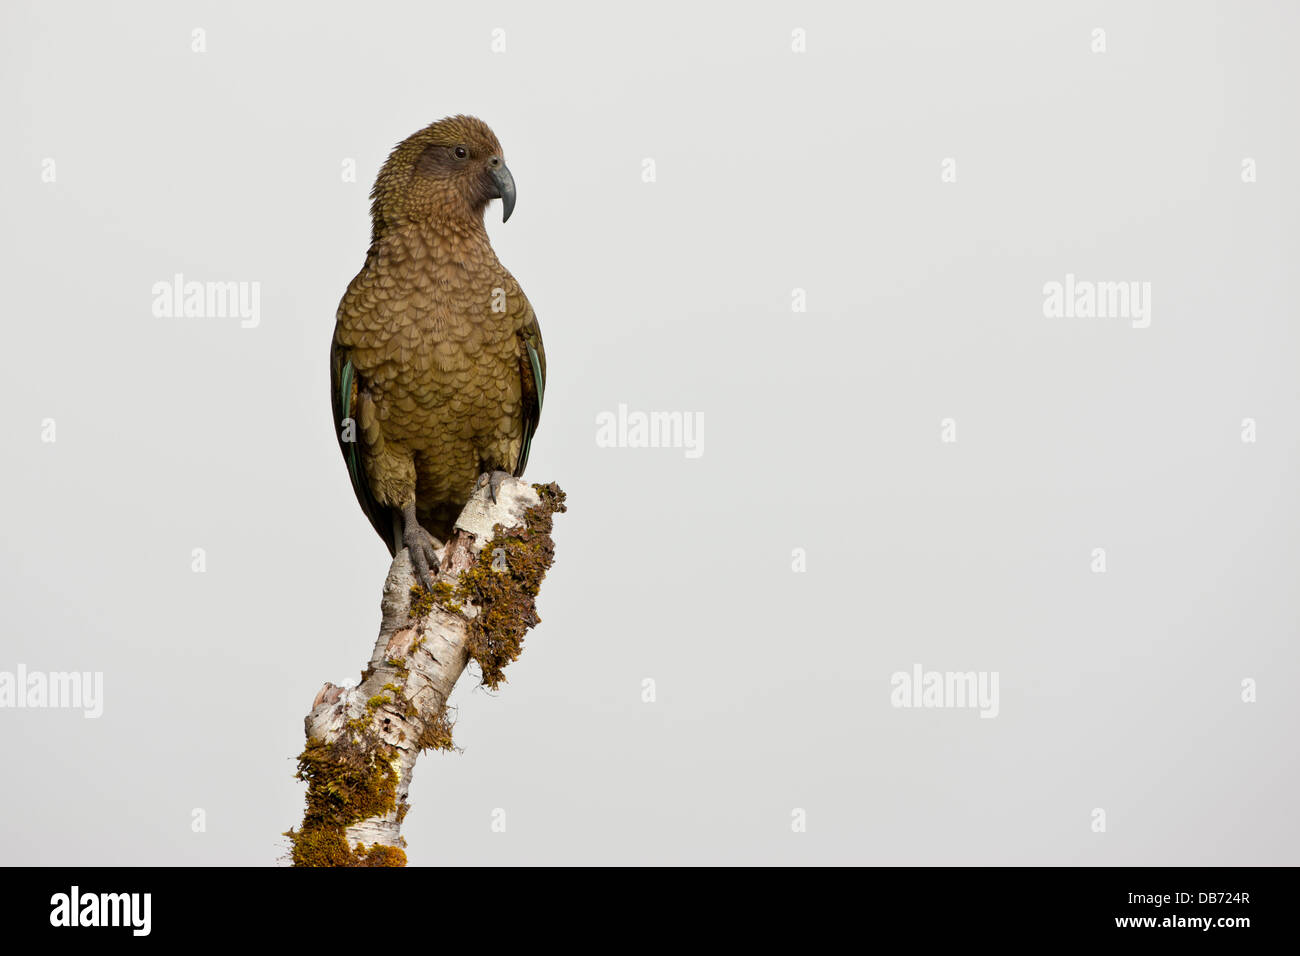 South Pacific, New Zealand, South Island, Fiordland National Park. Close-up of Kea parrot on tree stump. - Stock Image